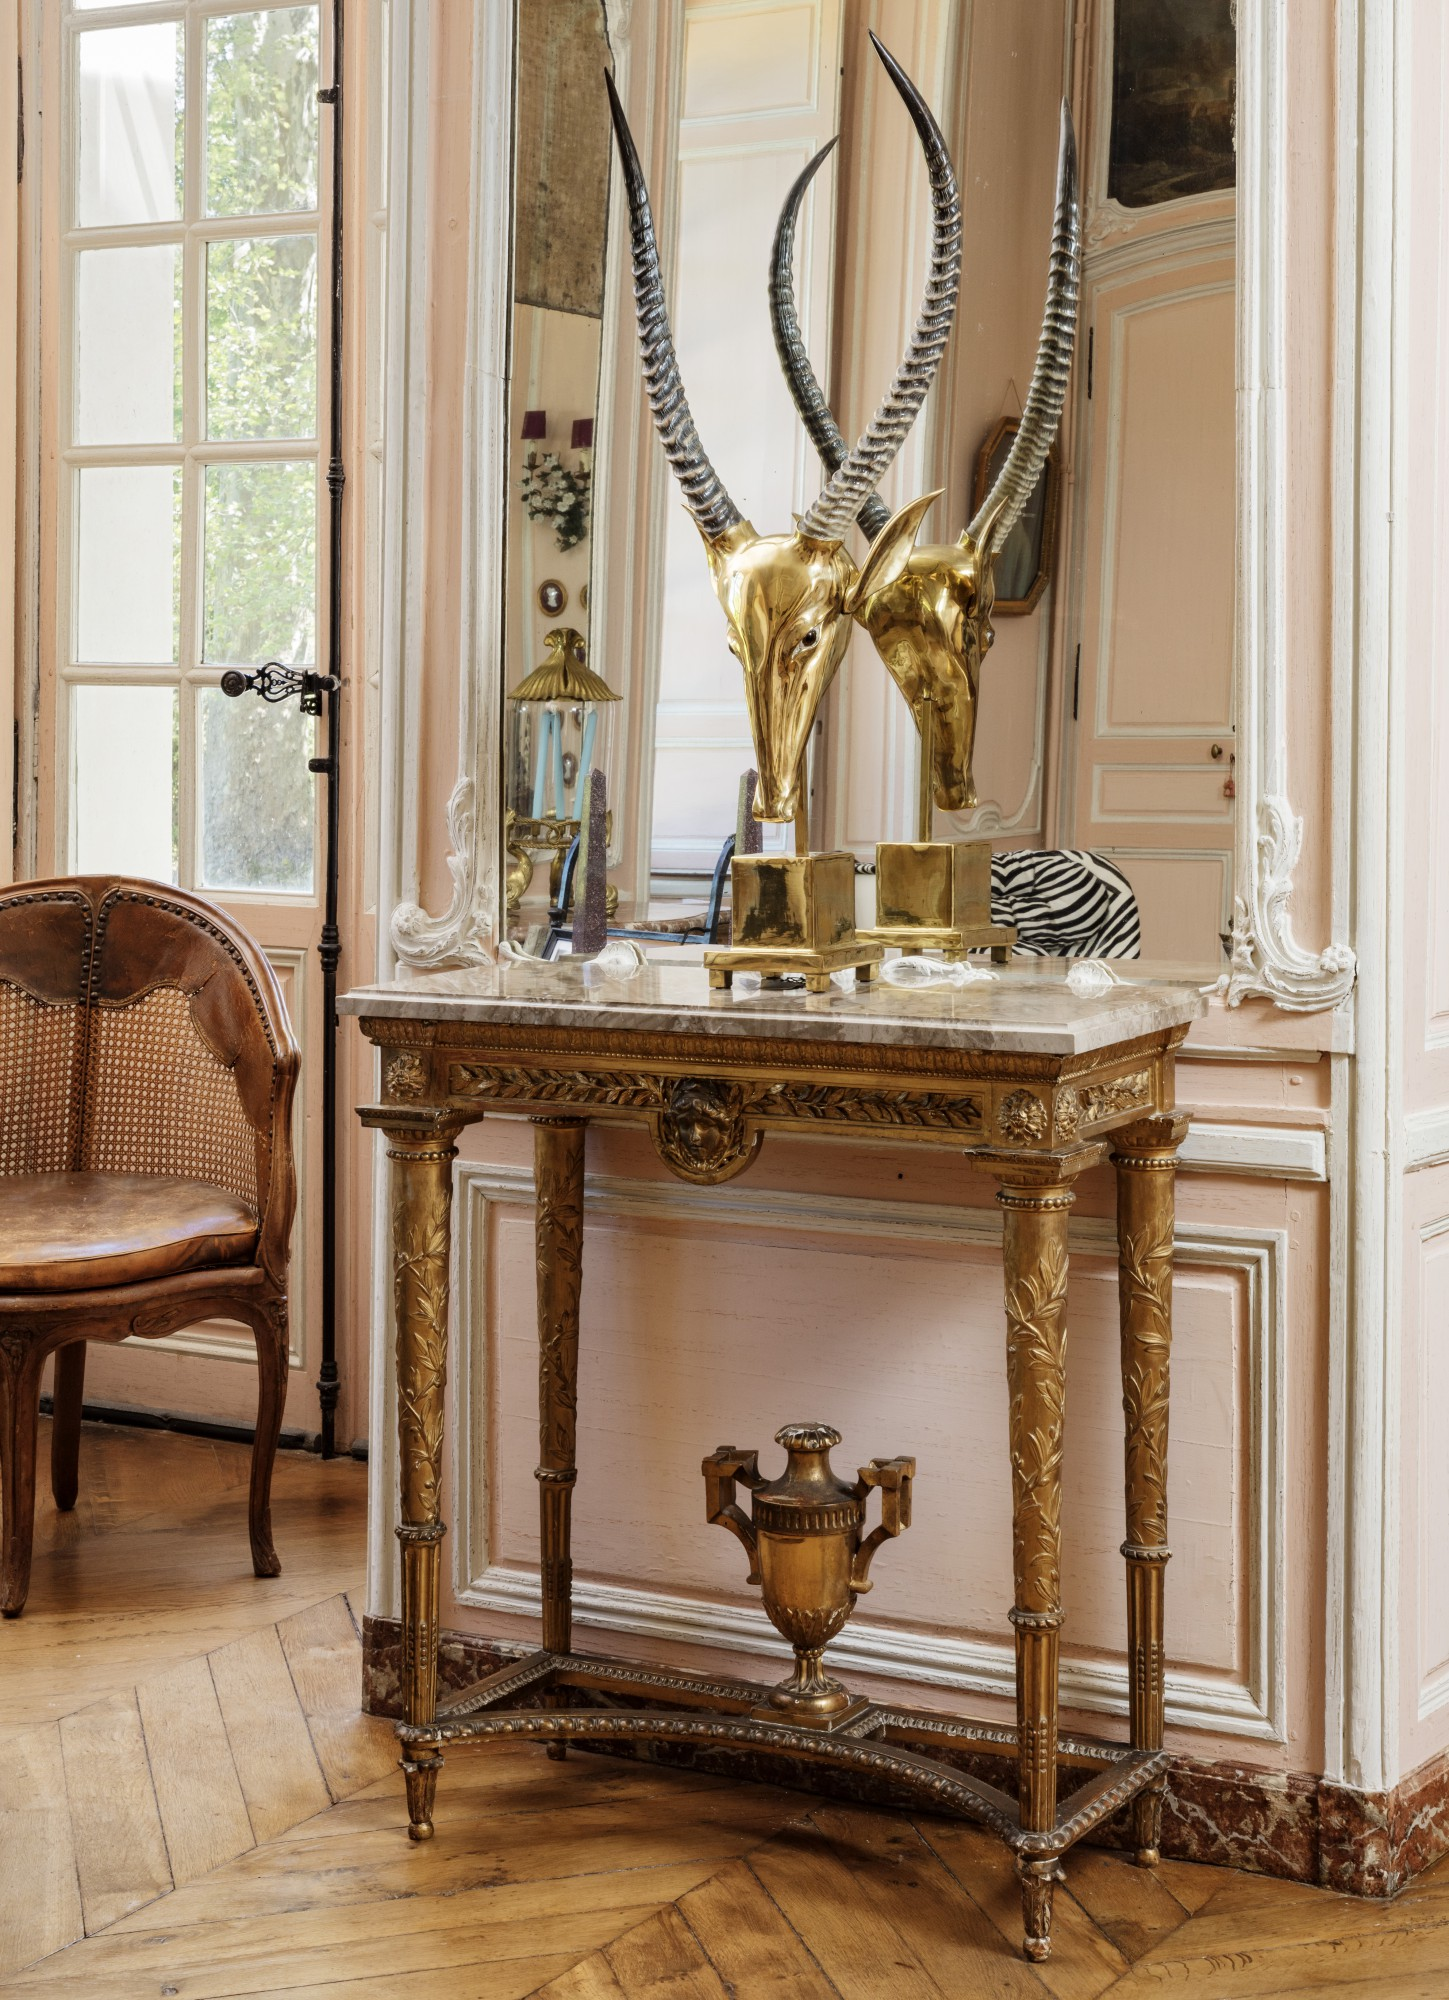 A CARVED GILTWOOD CONSOLE, LATE 18TH/EARLY 19TH CENTURY, IN THE MANNER OF GEORGES JACOB [CONSOLE EN BOIS SCULPTÉ ET REDORÉ DE LA FIN DU XVIIIE/DÉBUT DU XIXE SIÈCLE, DANS LE GOÛT DE GEORGES JACOB]